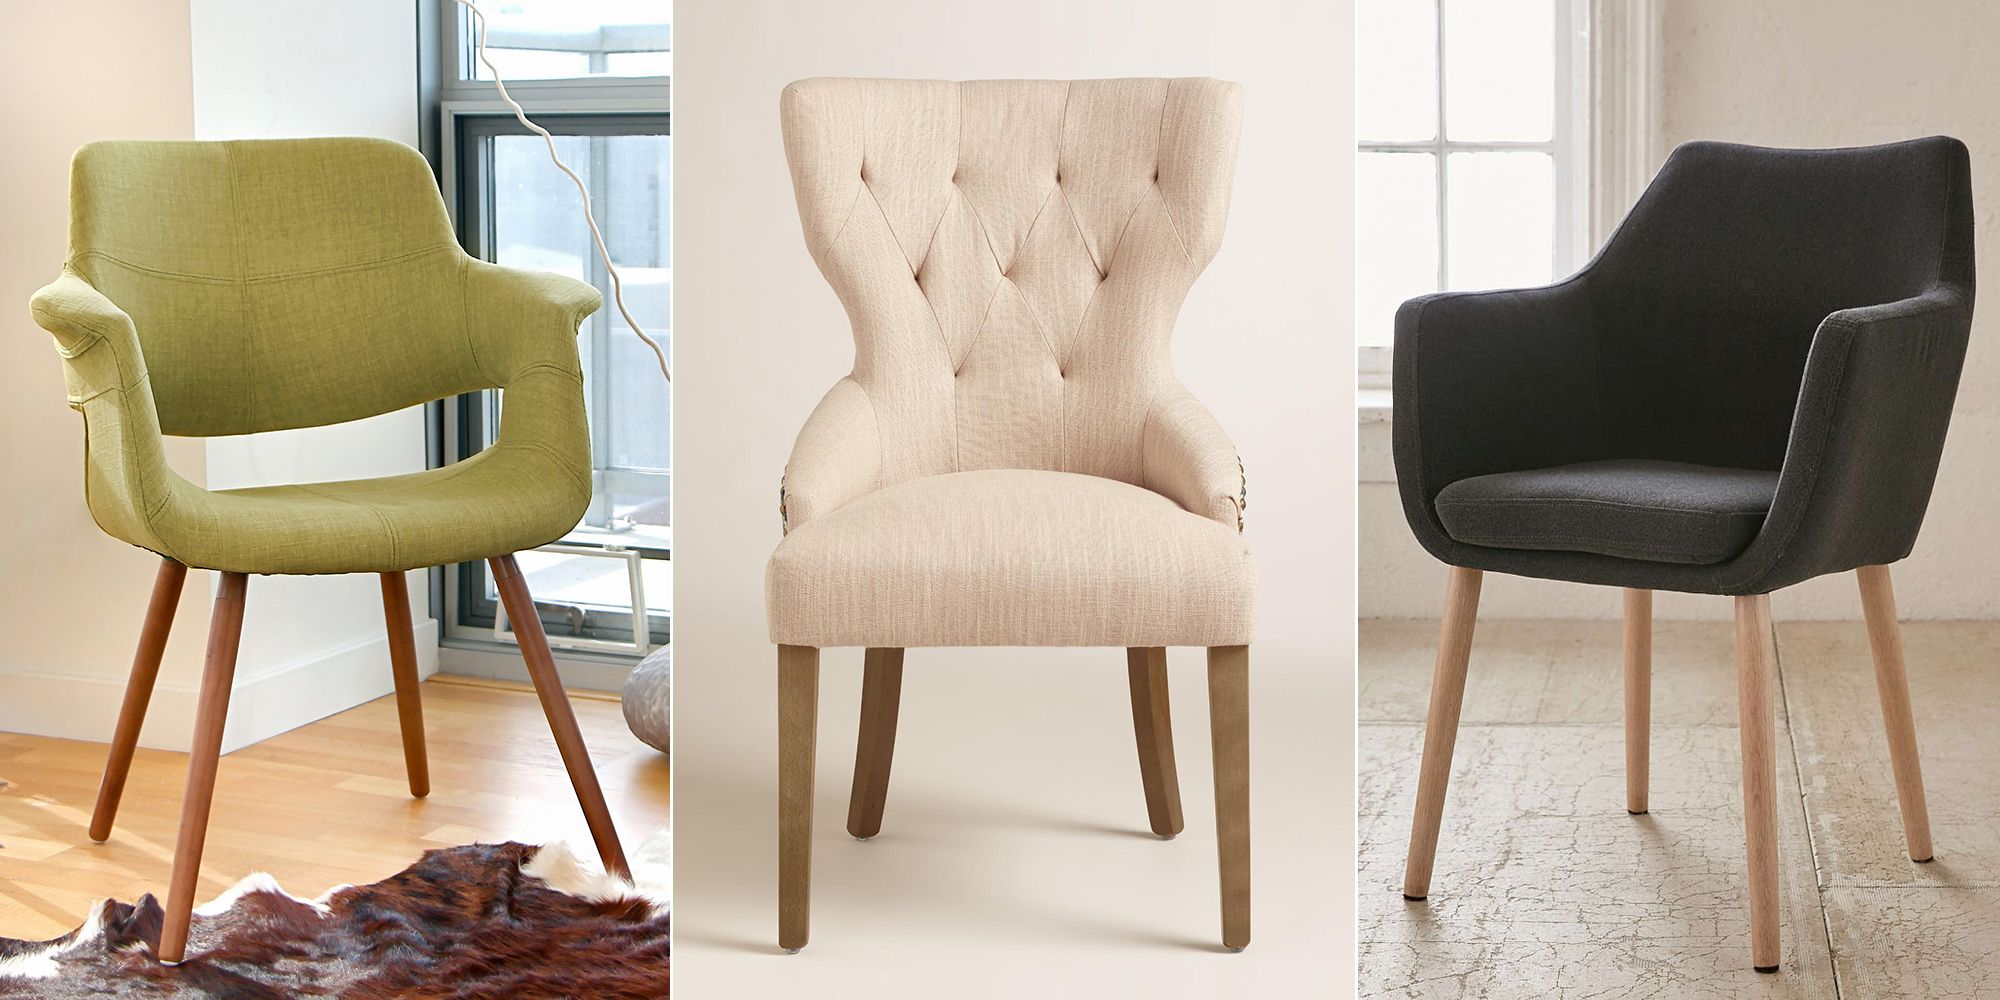 Greatest 13 Best Accent Chairs in 2018 - Decorative Accent Chair Reviews  SI17